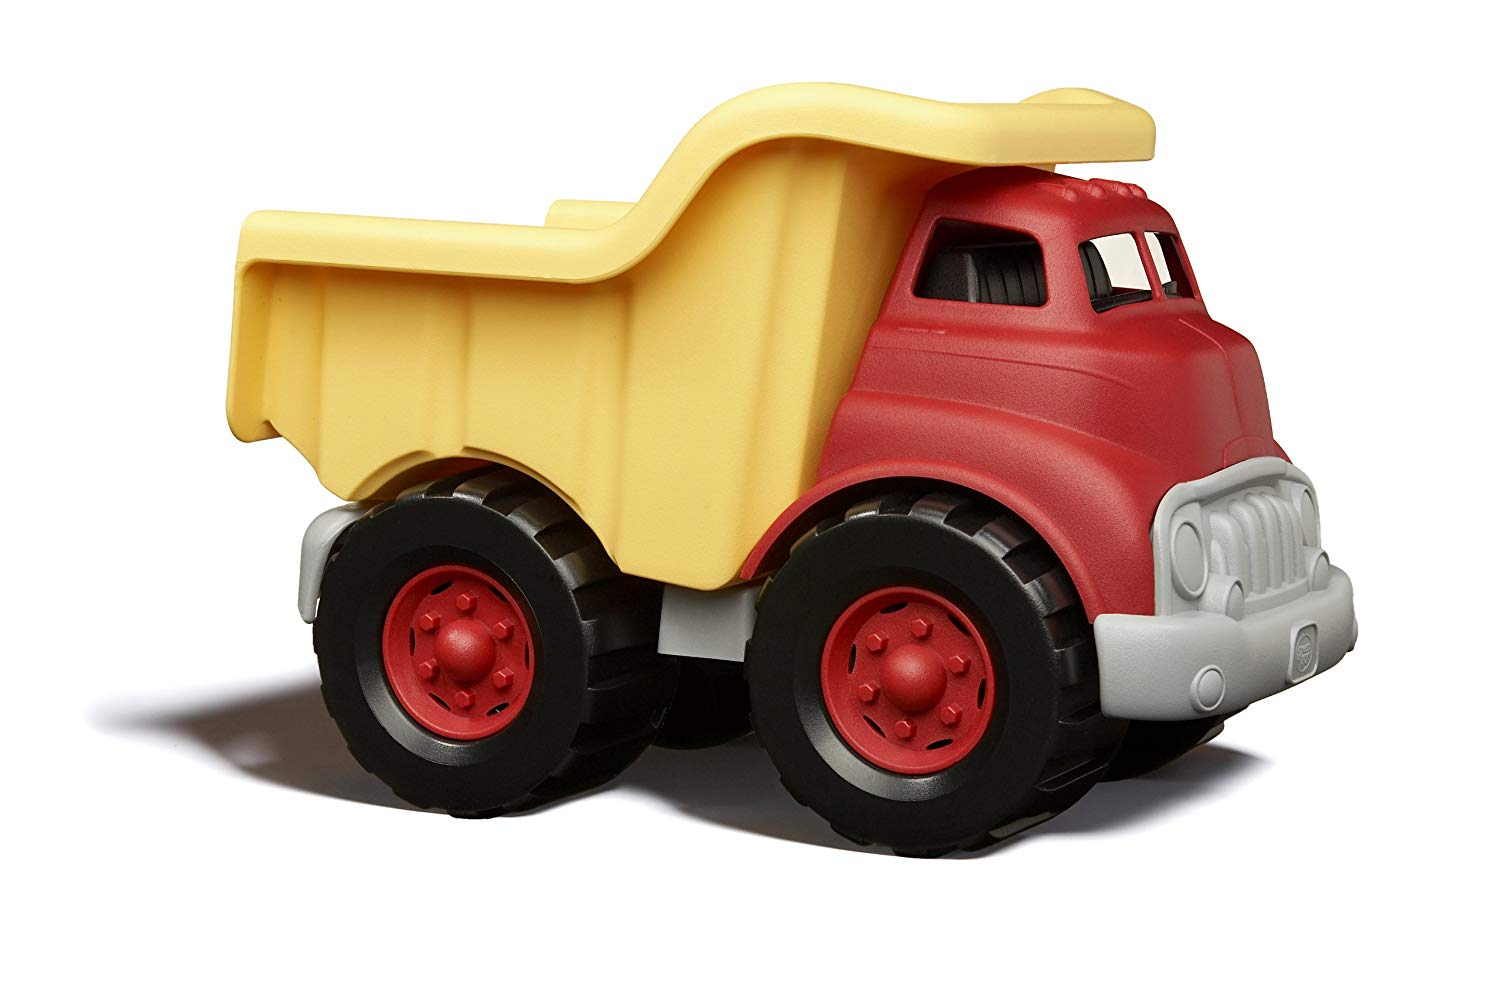 Green Toys dump truck at Little Sprout